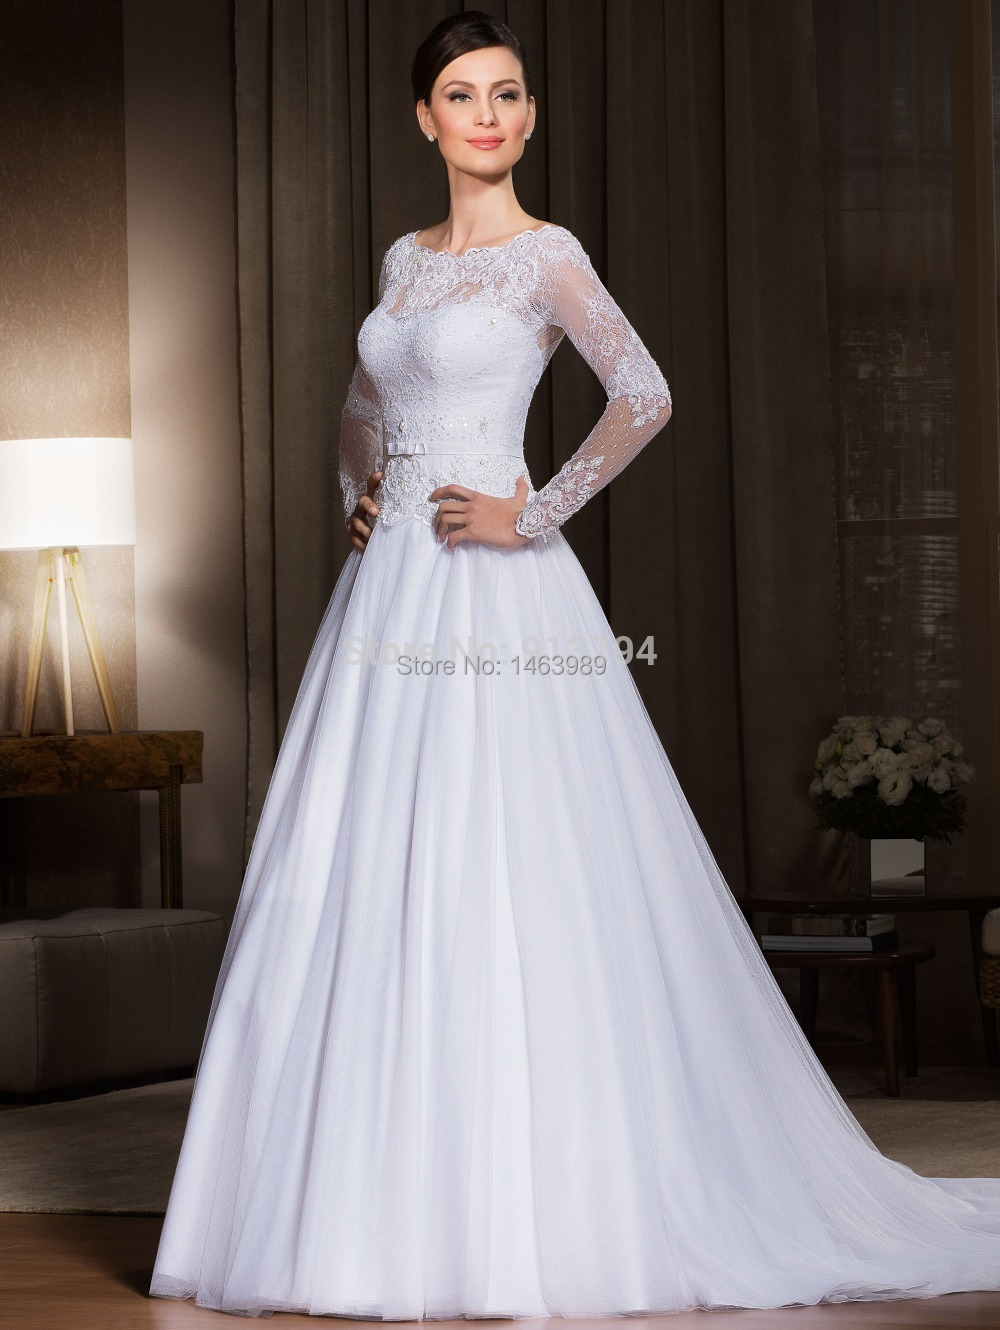 Plus size wedding dresses long sleeves a line tulle for Long sleeve plus size wedding dress